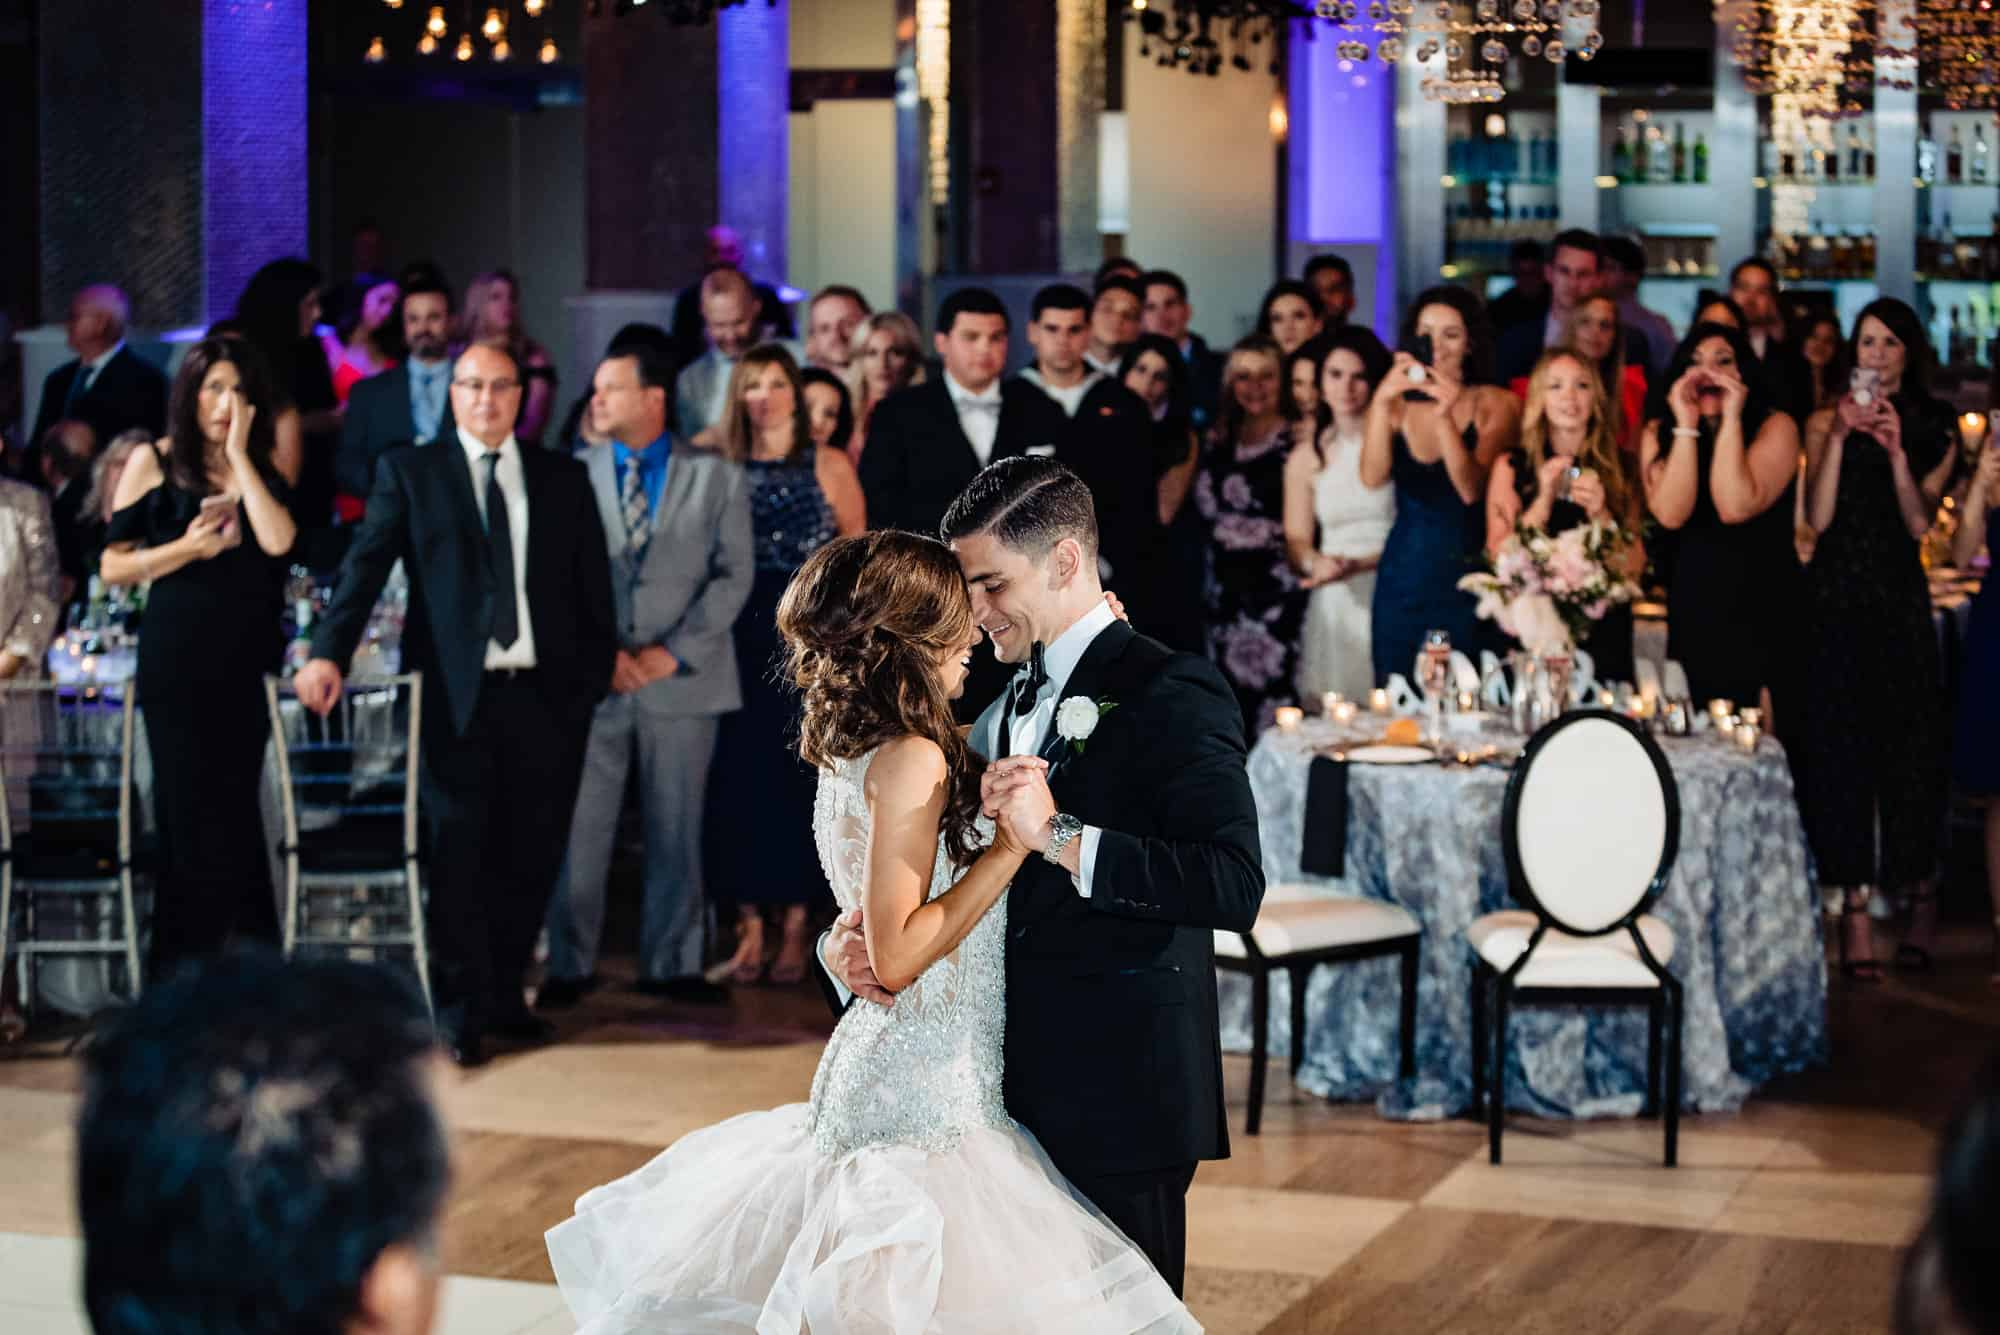 Gabriella+Nick-Tendenza Wedding-60